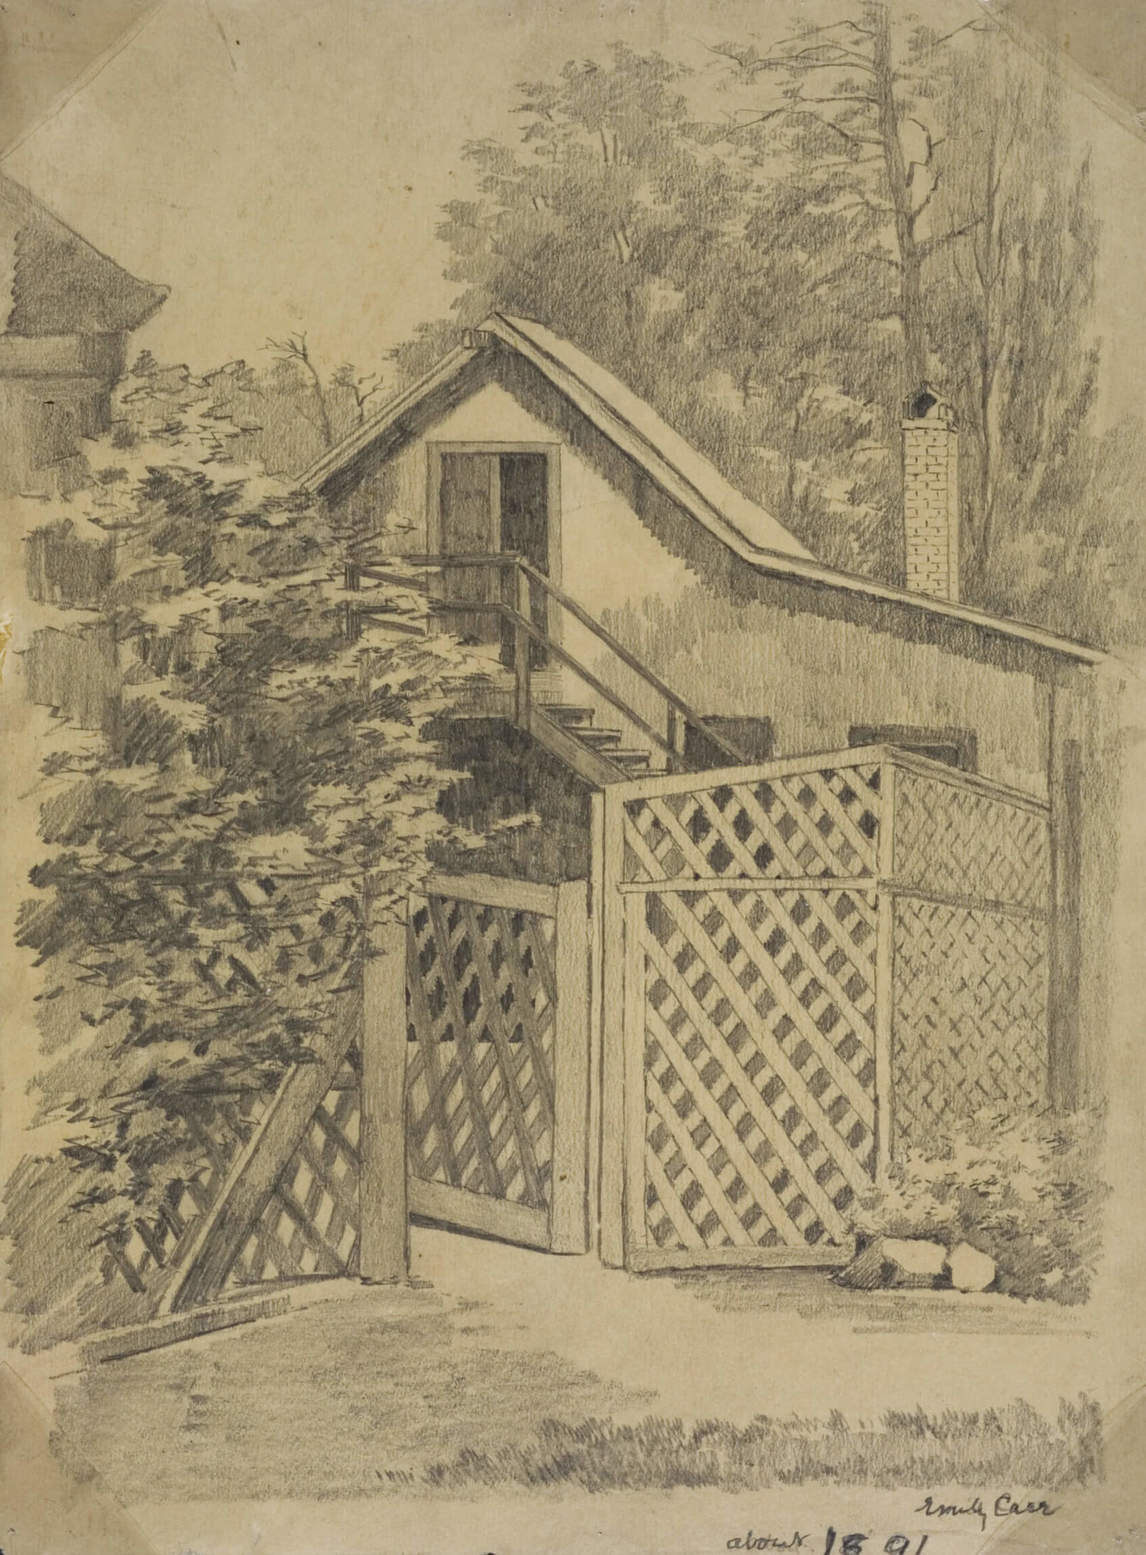 Art Canada Institute, Emily Carr, Emily's Old Barn Studio, c. 1891